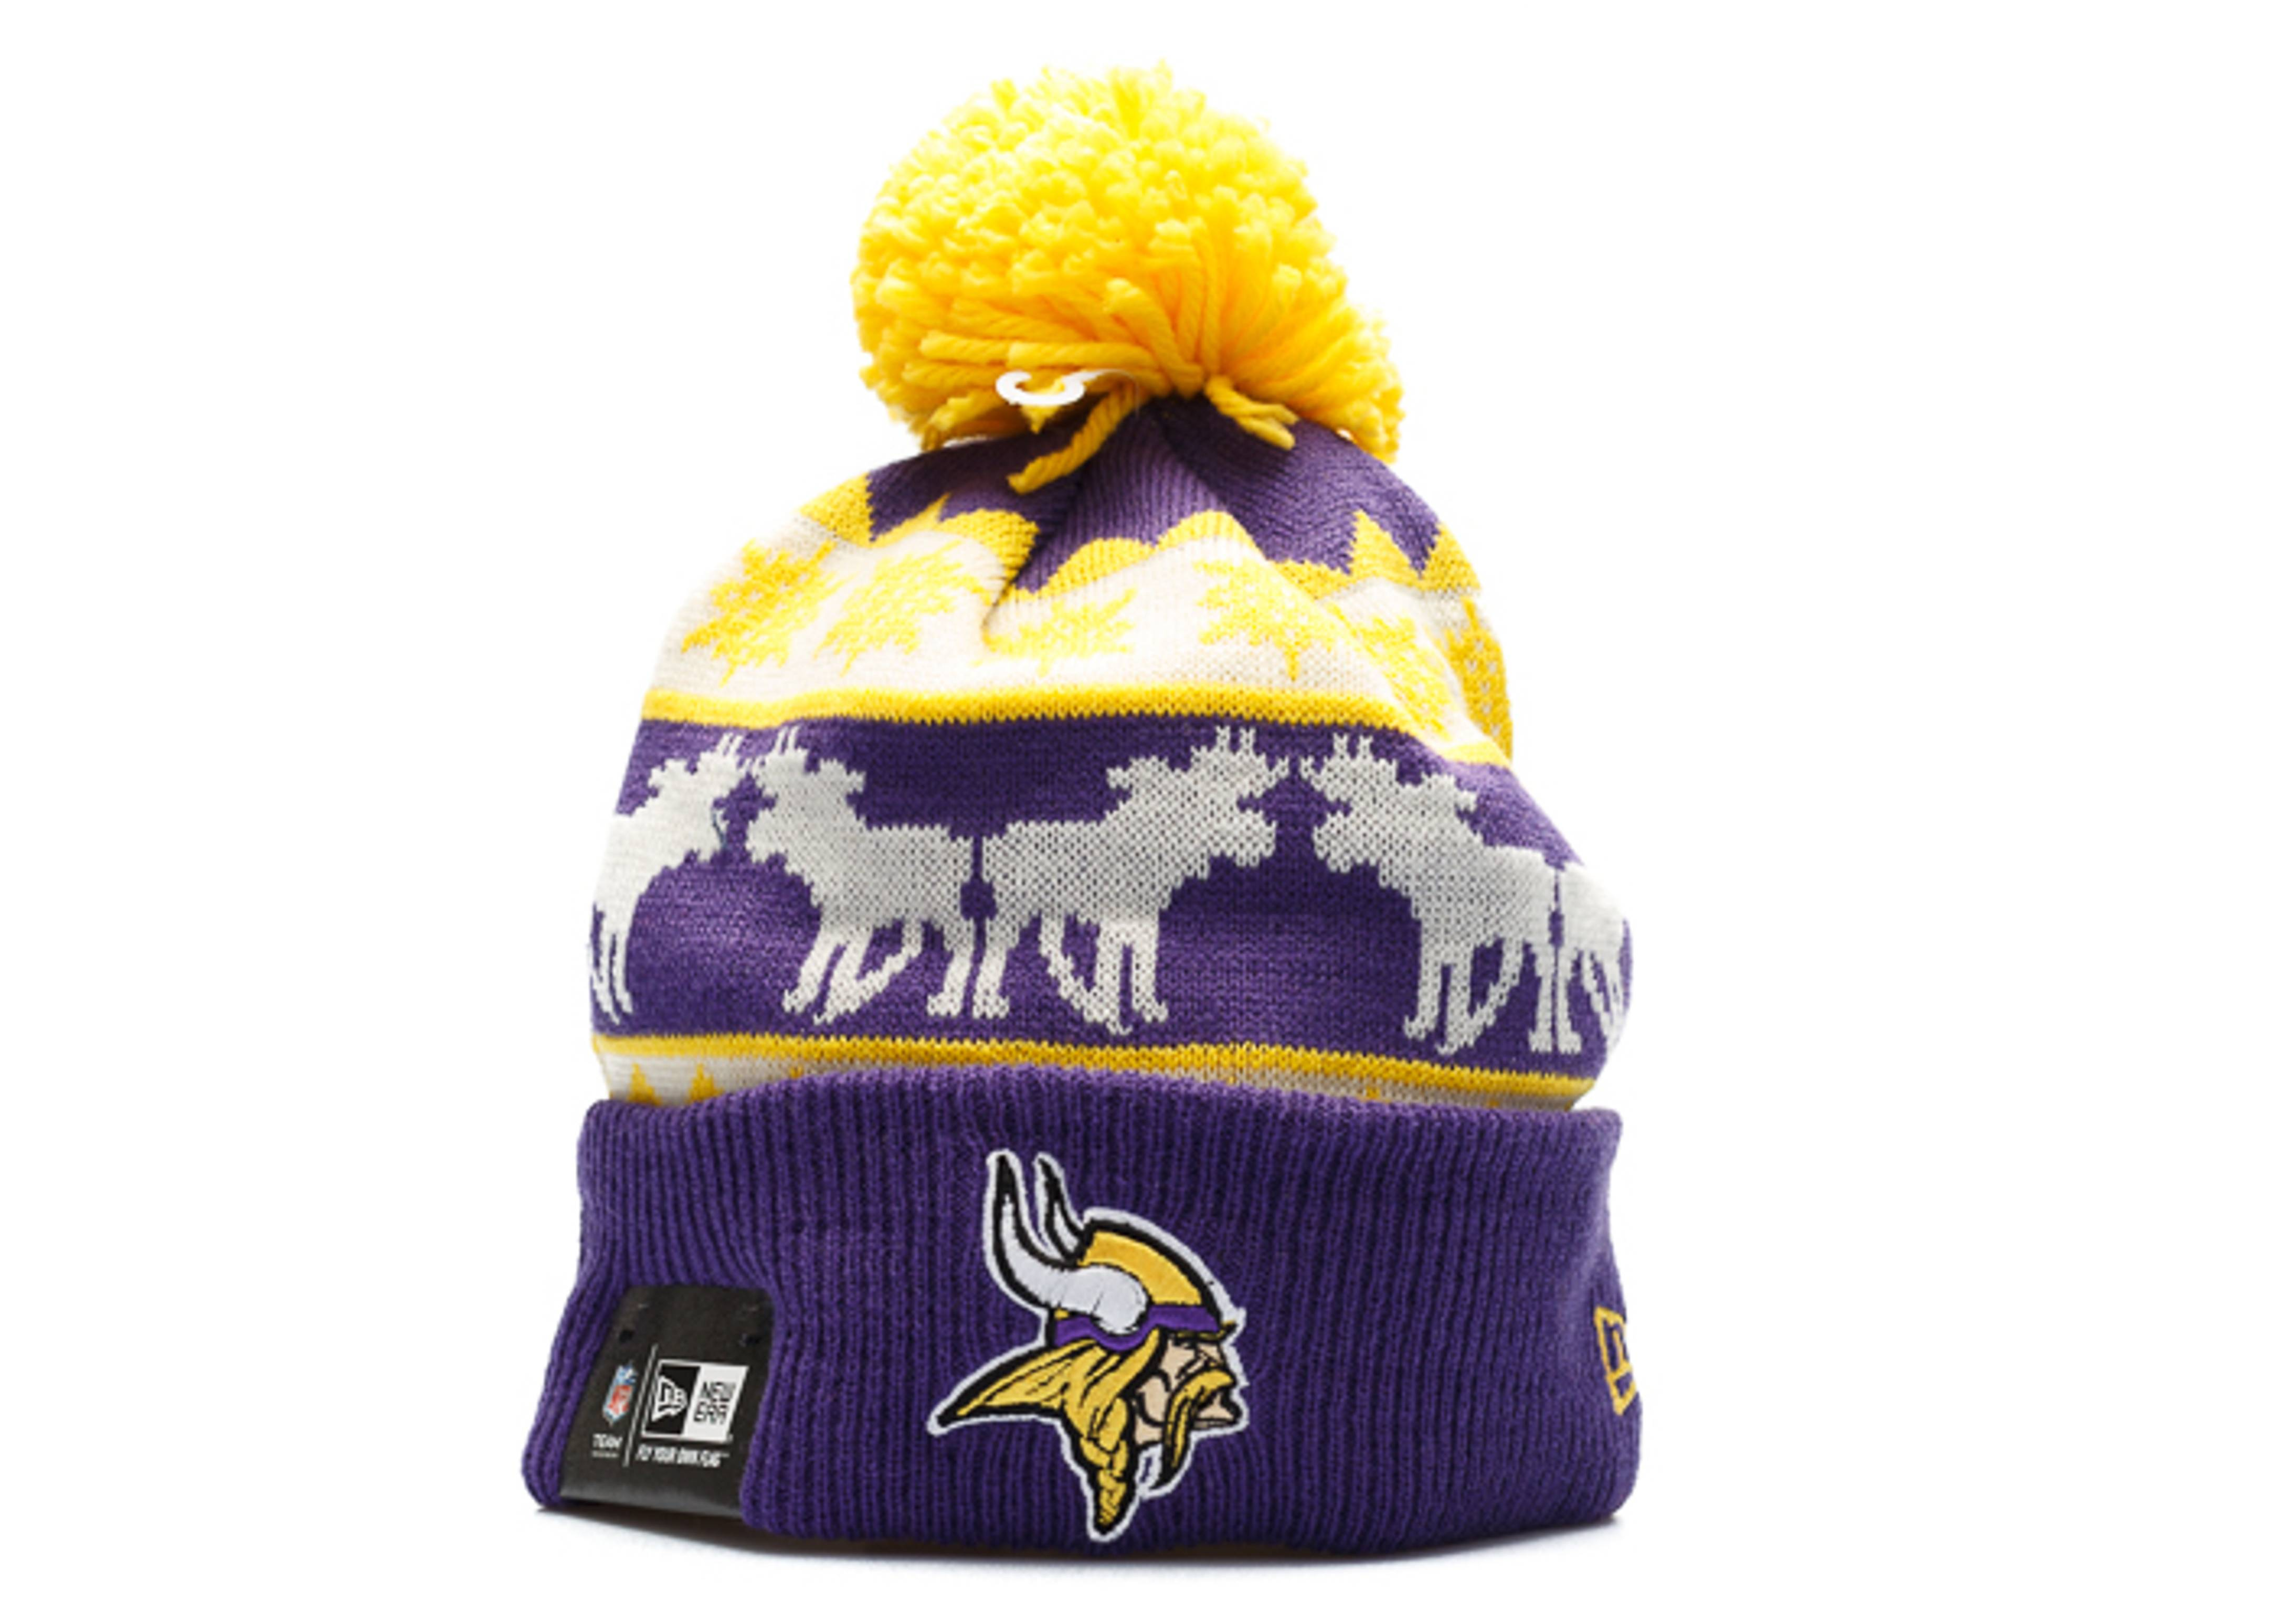 40a10d645 Minnesota Vikings Knit Cuffed Pom Beanie - New Era - 80083280 -  purple yellow white